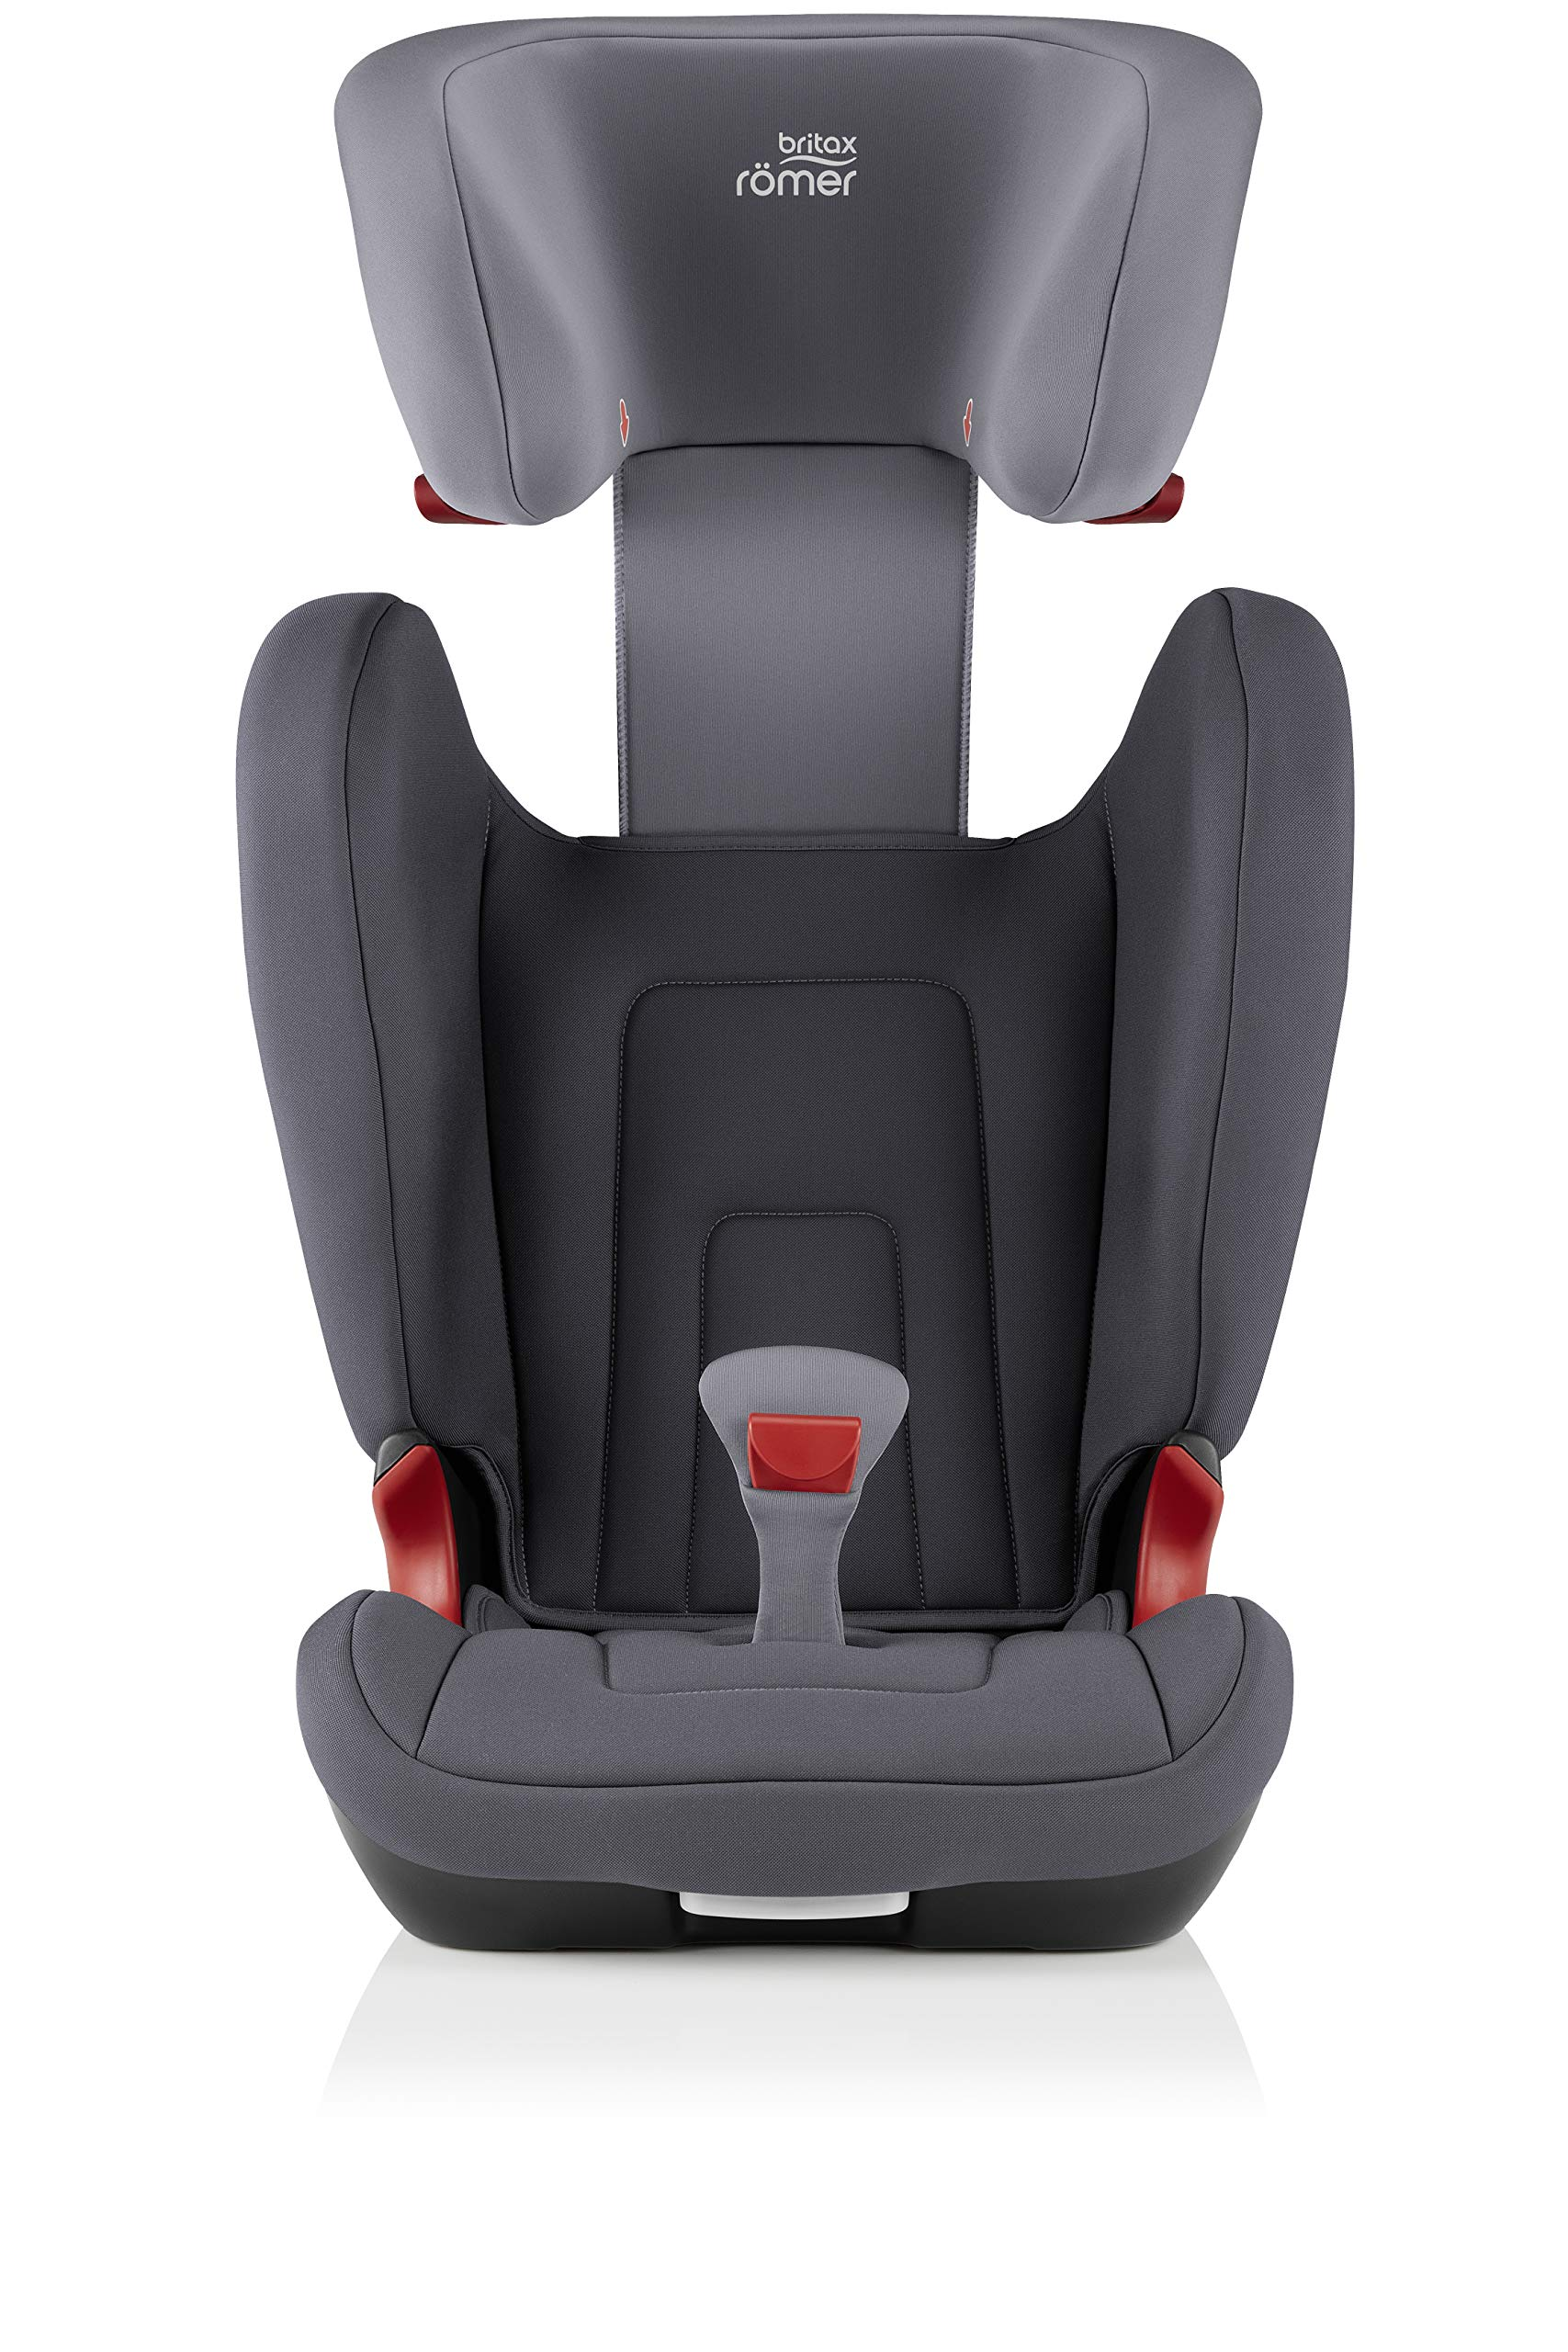 Britax Römer car seat 15-36 kg, KIDFIX 2 R Isofix group 2/3, Storm Grey Britax Römer Secure guard - helps to protect your child's delicate abdominal area by adding an extra - a 4th - contact point to the 3-point seat belt. High back booster - protects your child in 3 ways: provides head to hip protection; belt guides provide correct positioning of the seat belt and the padded headrest provides safety and comfort. Easy adjustable v-shaped backrest - designed to give optimum support to your growing child, the v-shaped backrest provides more space for their back and shoulders. 6